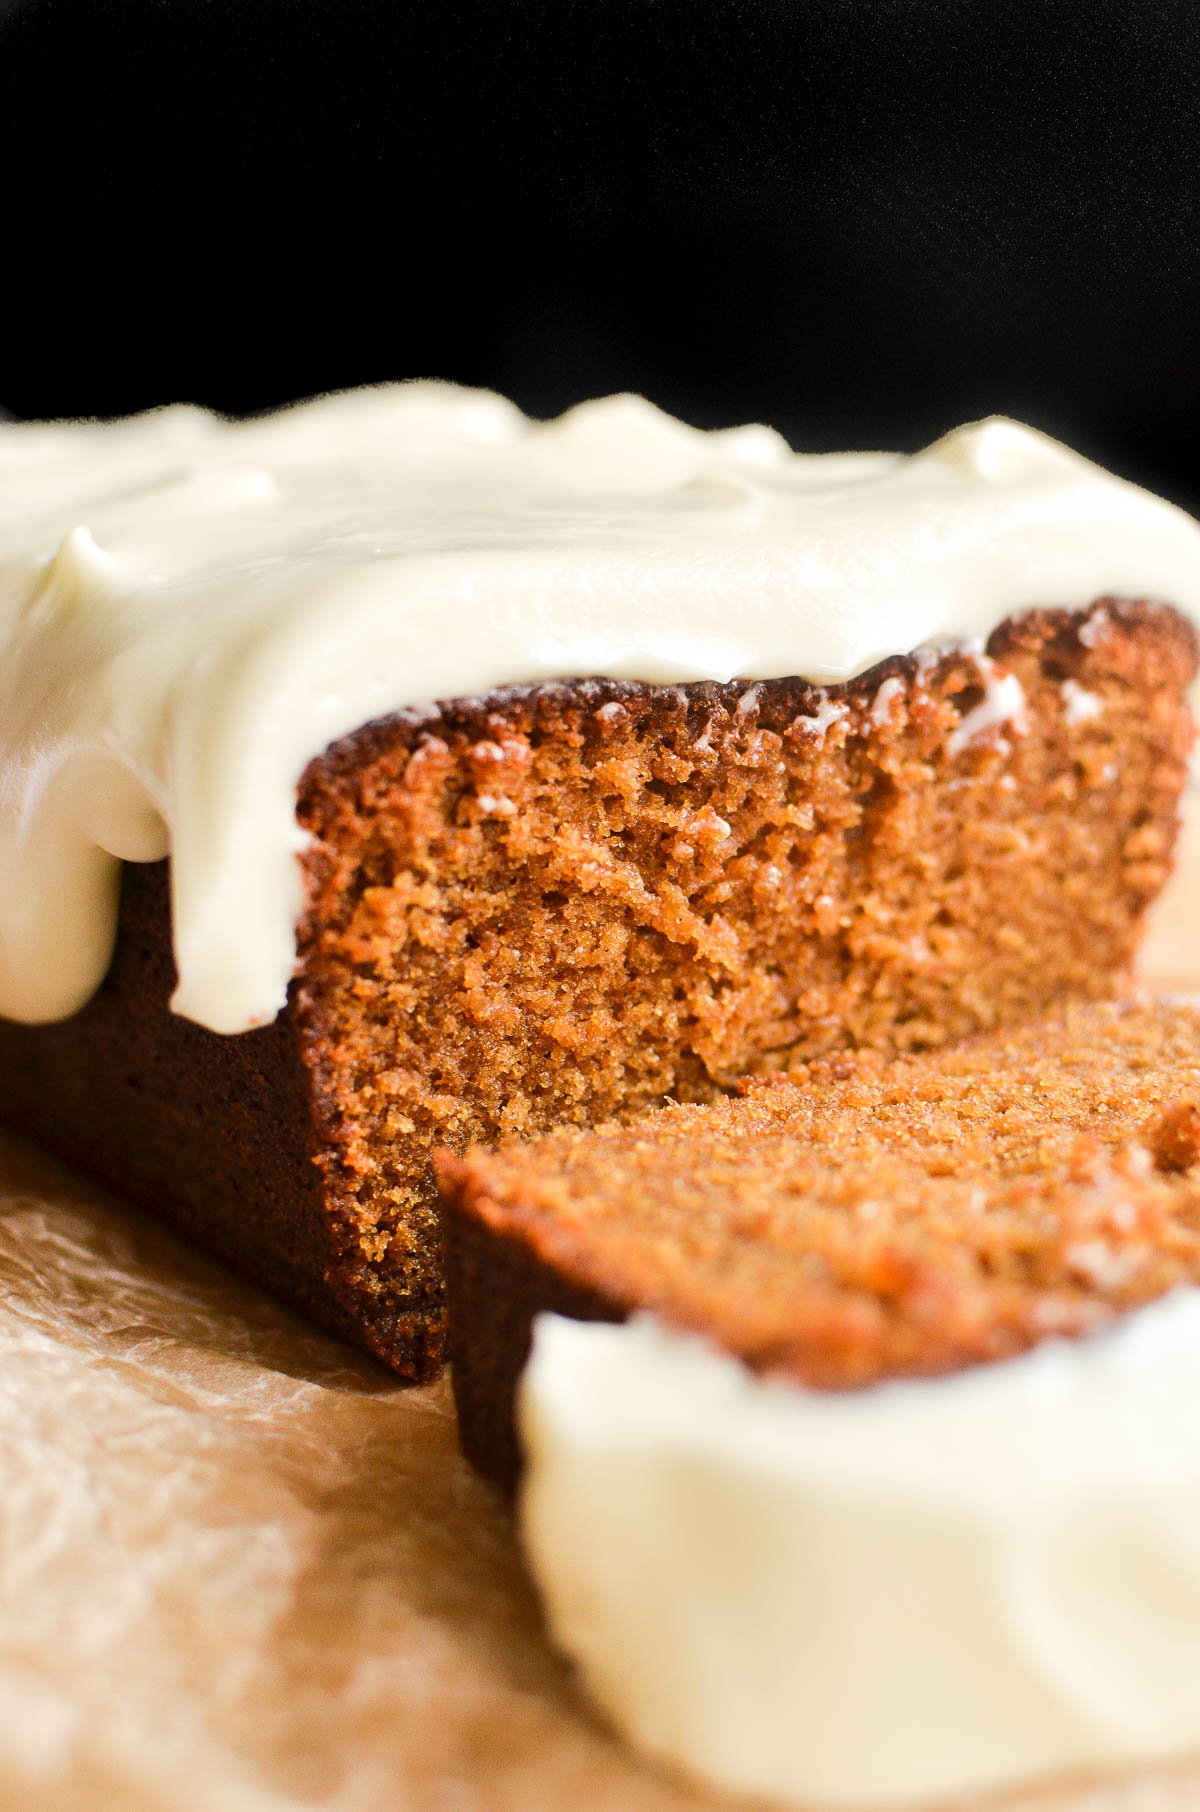 Gingerbread loaf cake sliced, on a piece of parchment paper.